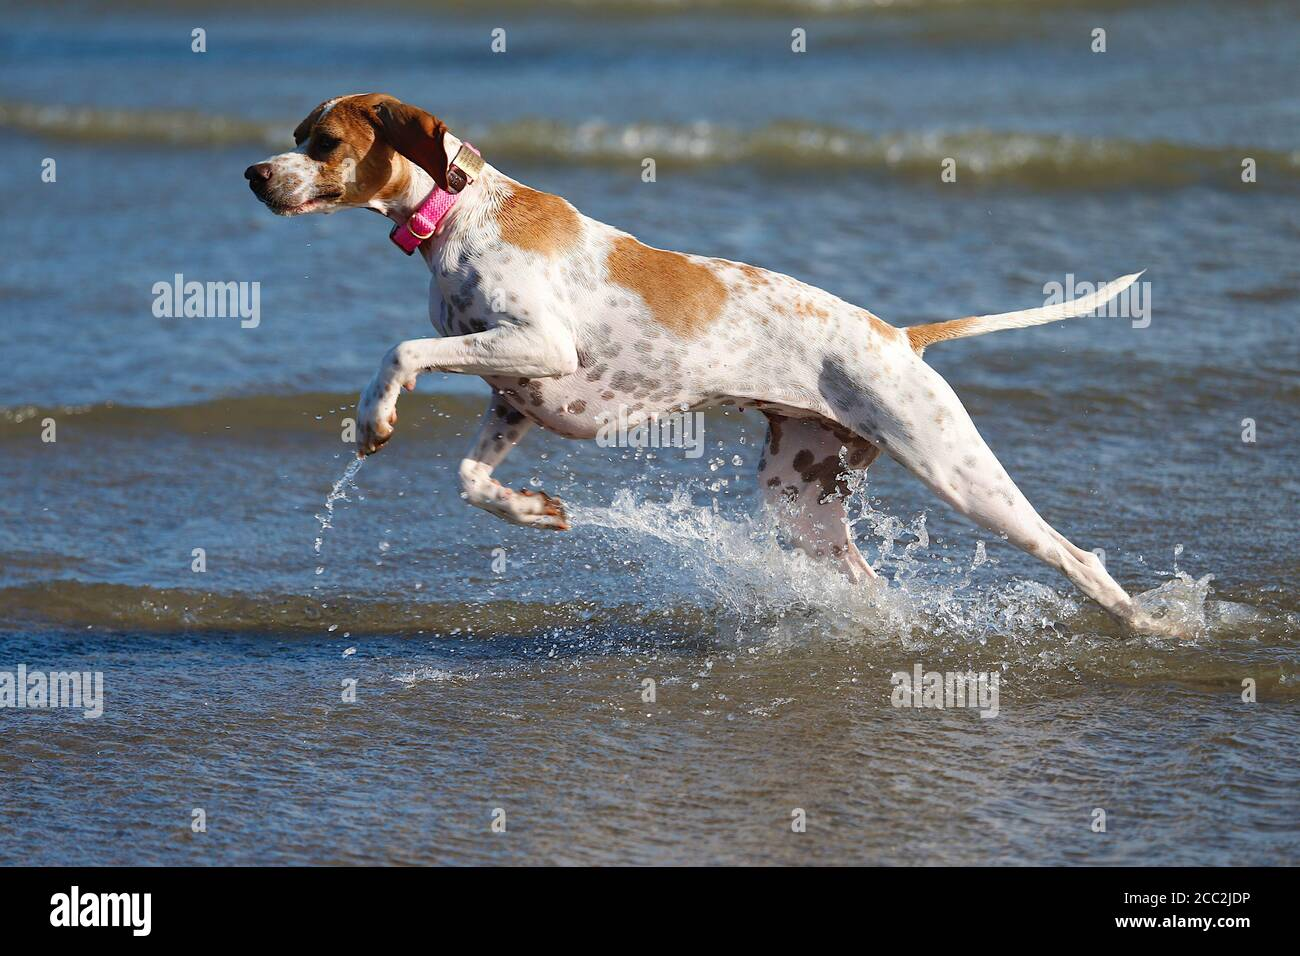 Camber, East Sussex, UK. 17 Aug, 2020. UK Weather: The wind has picked up which is Ideal for these kite surfers who take advantage of the blustery conditions at Camber in East Sussex. A rescue English pointer enjoys splashing about in the sea at Camber. Photo Credit: Paul Lawrenson-PAL Media/Alamy Live News Stock Photo